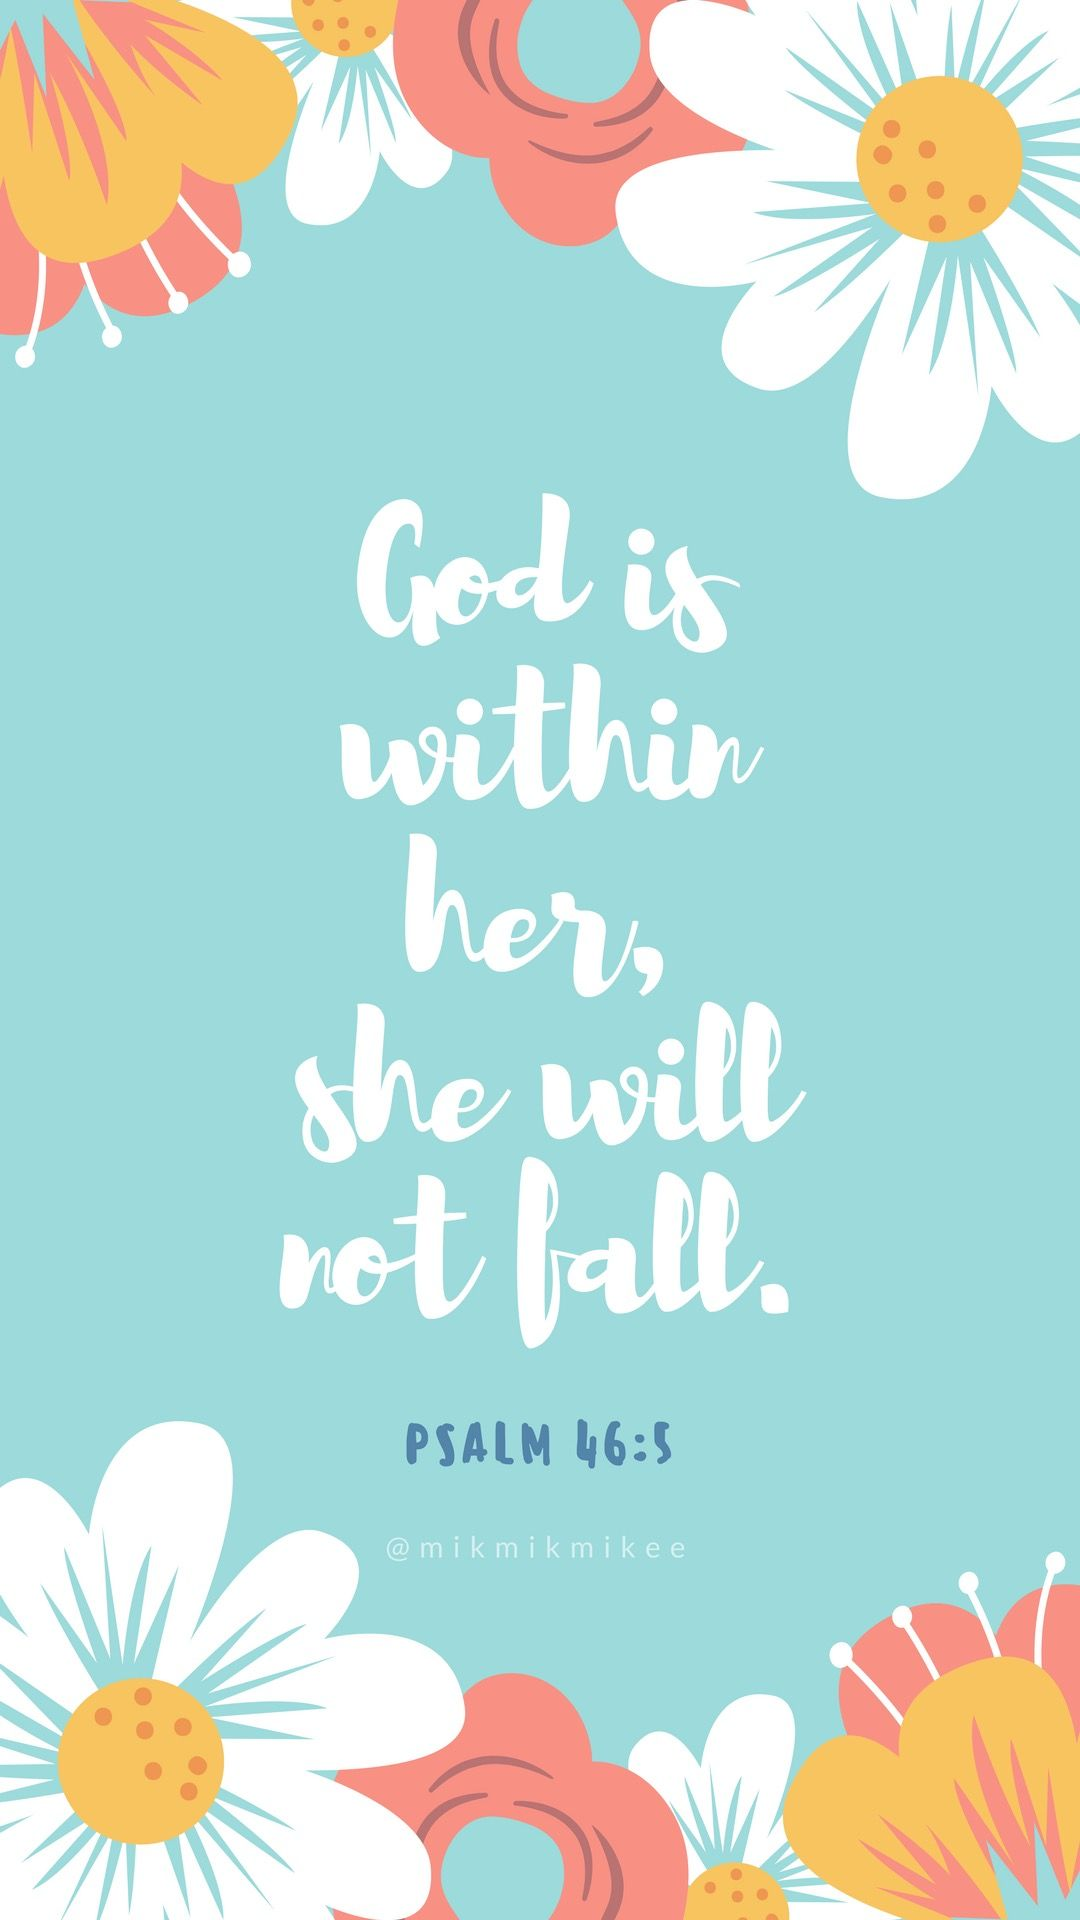 Lds Quotes Iphone Wallpaper God Is Within Her She Will Not Fall Psalm 46 5 Aqua